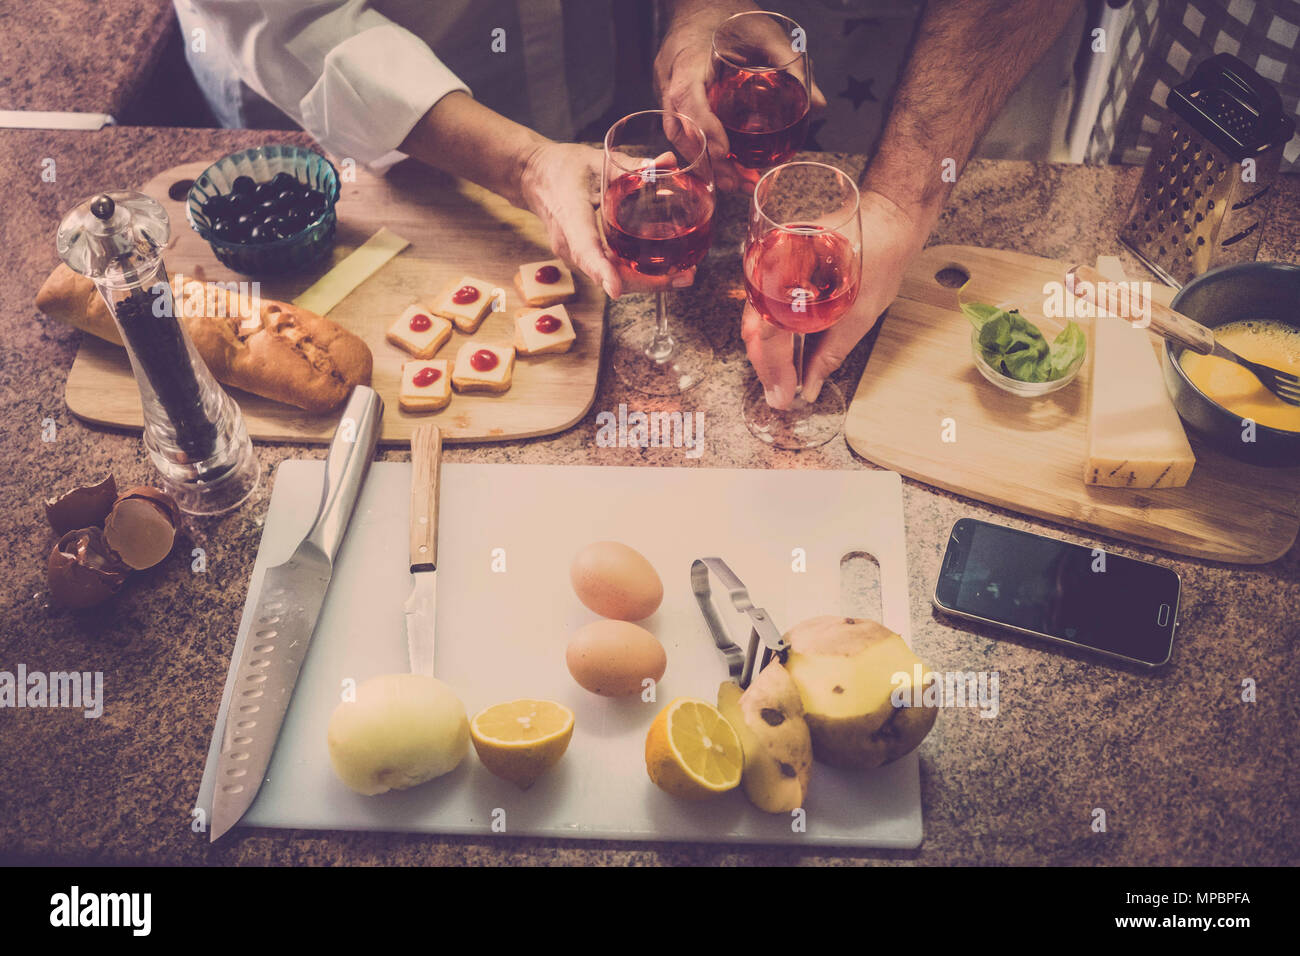 three people close up on hands on the table during a cooking time at home with family and friends. many raw food and mobile phone. - Stock Image